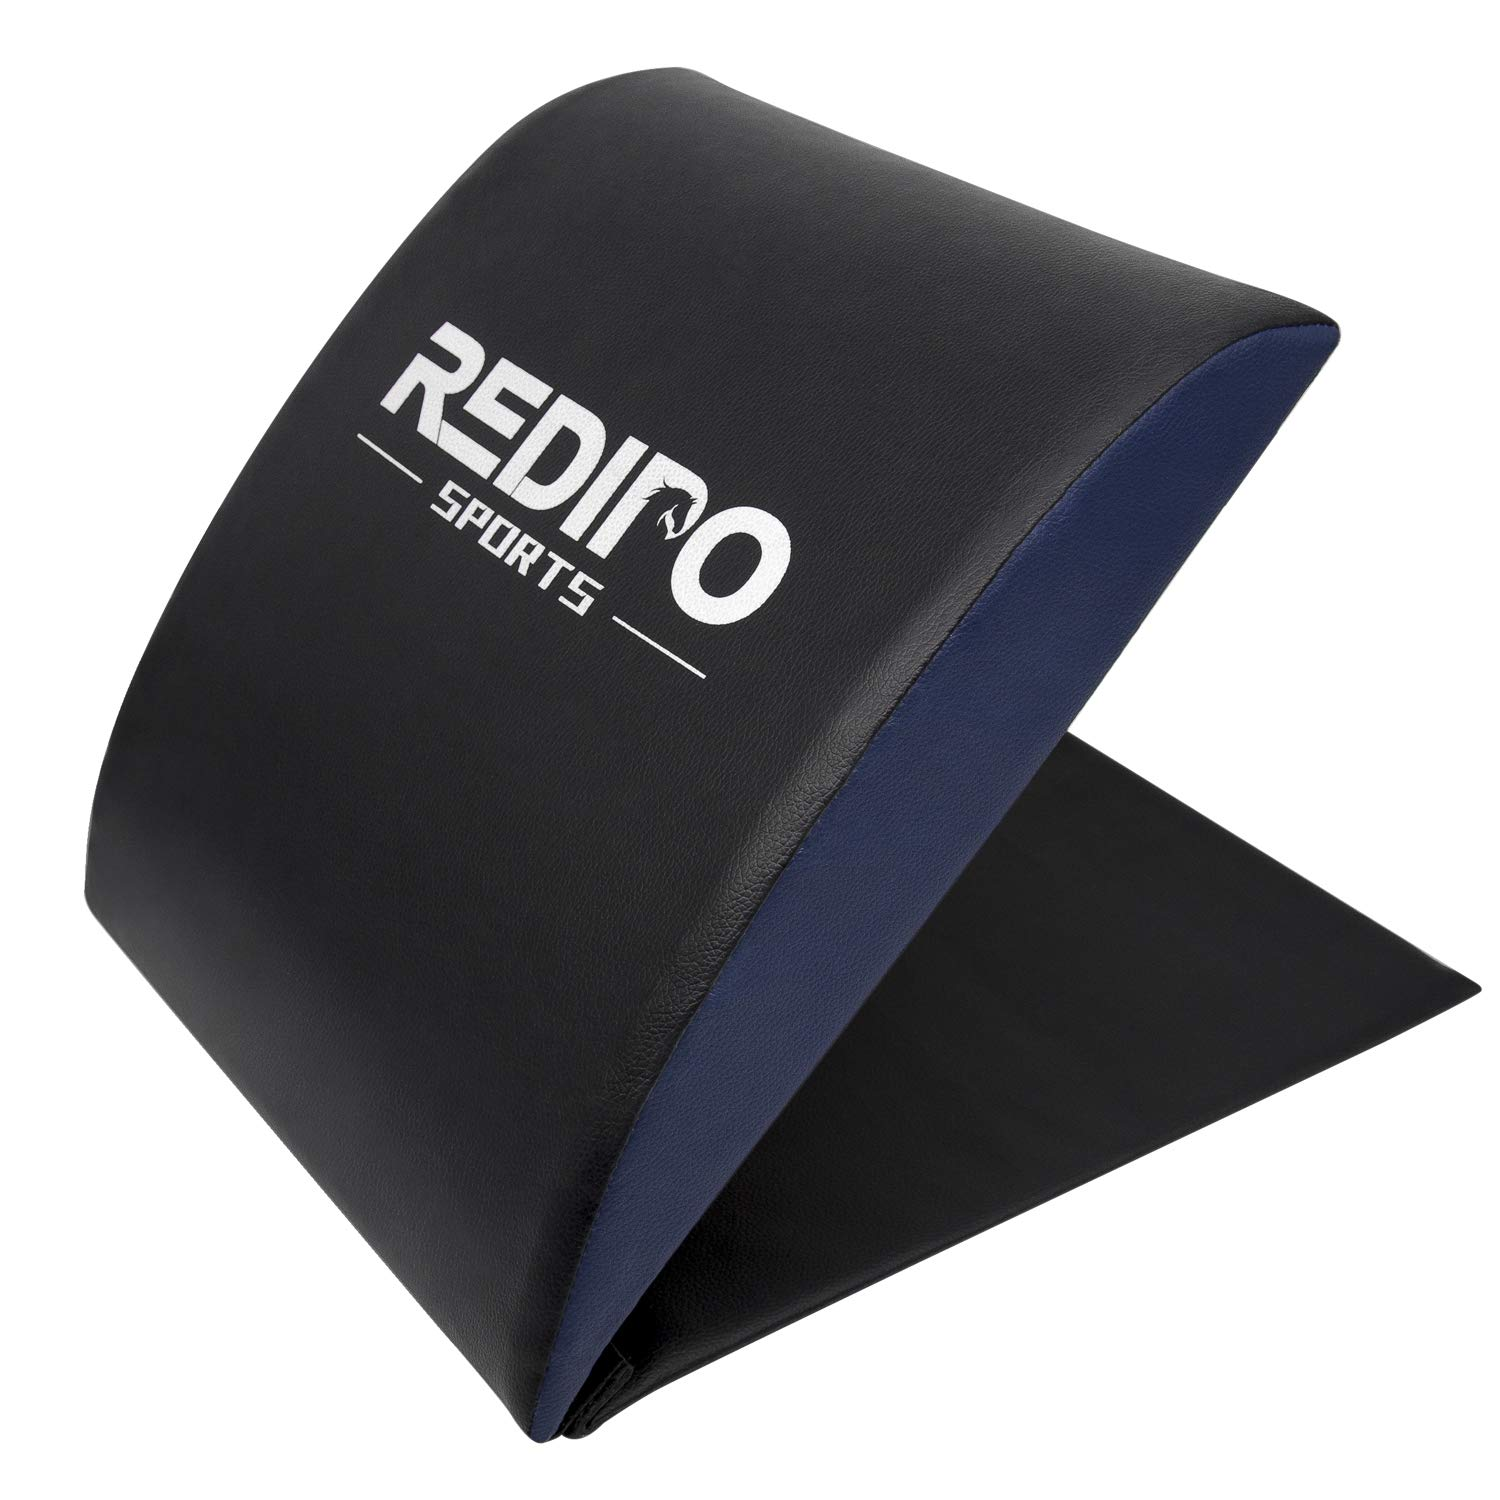 Redipo Abdominal Mat Ab Exercise Mat Lower Back Support- Sit Up Pad – Core Trainer Mat for Men Women Strengthening and Shaping Comprehensive Ab Workouts